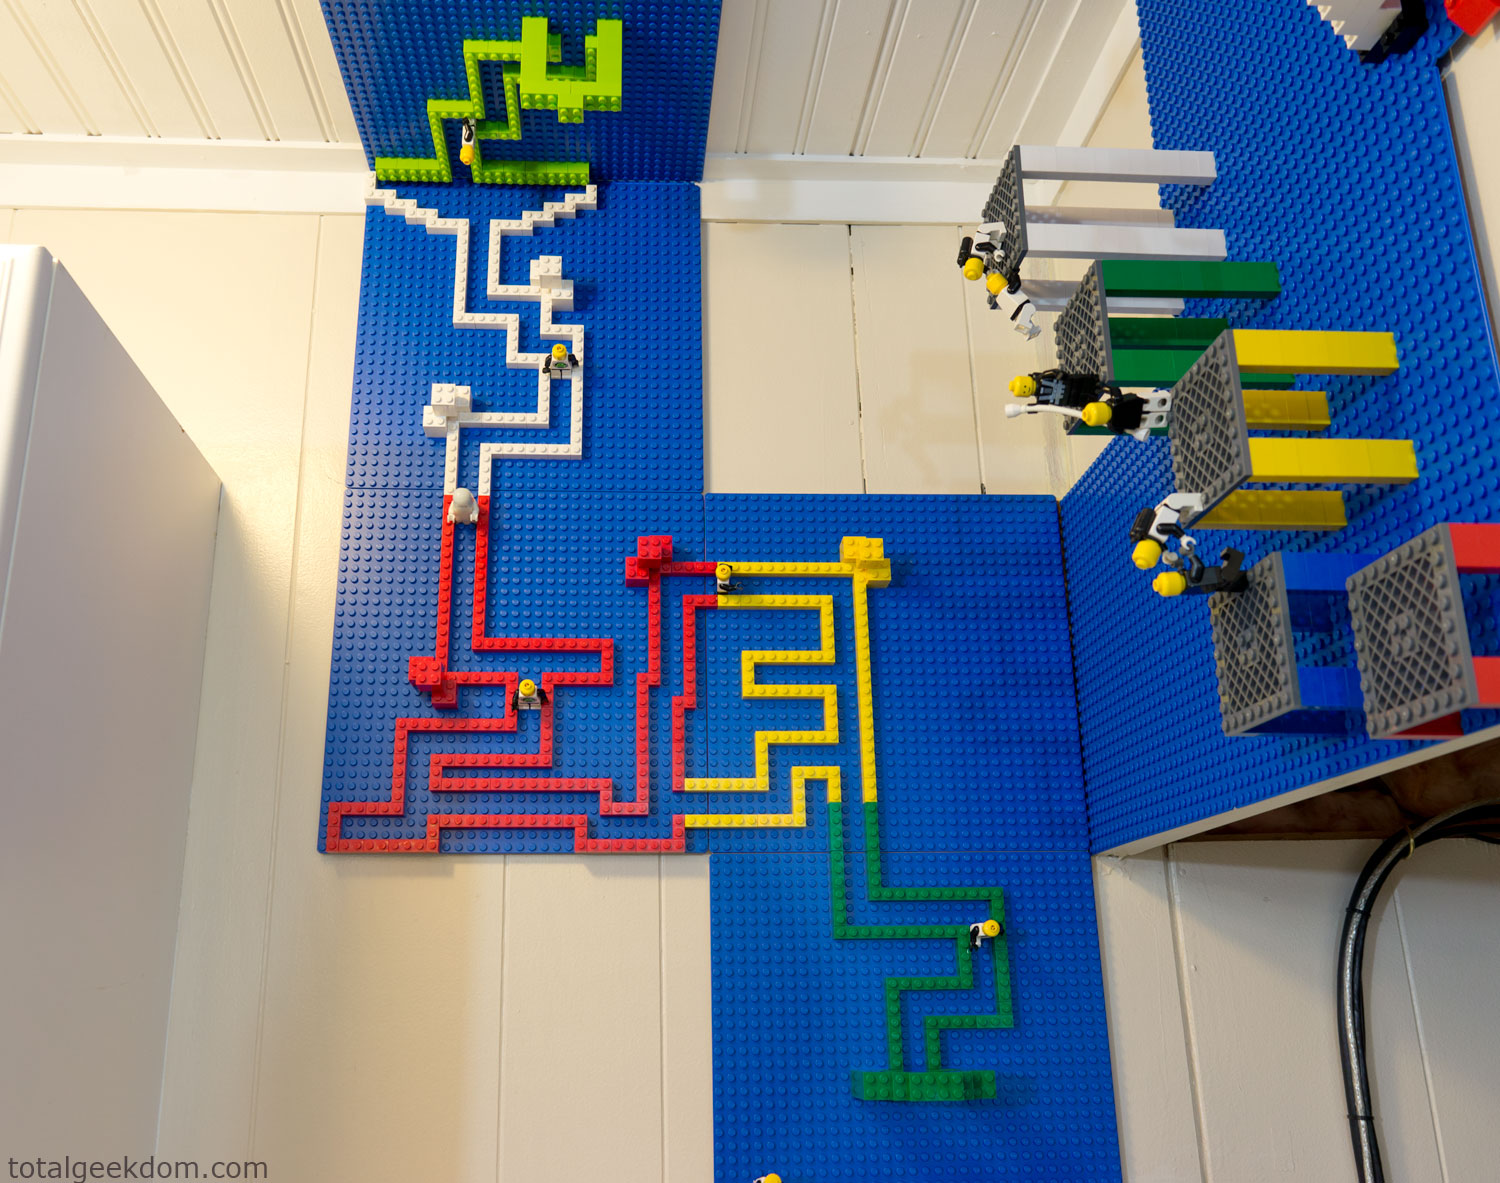 lego wall and ceiling build area total geekdom. Black Bedroom Furniture Sets. Home Design Ideas